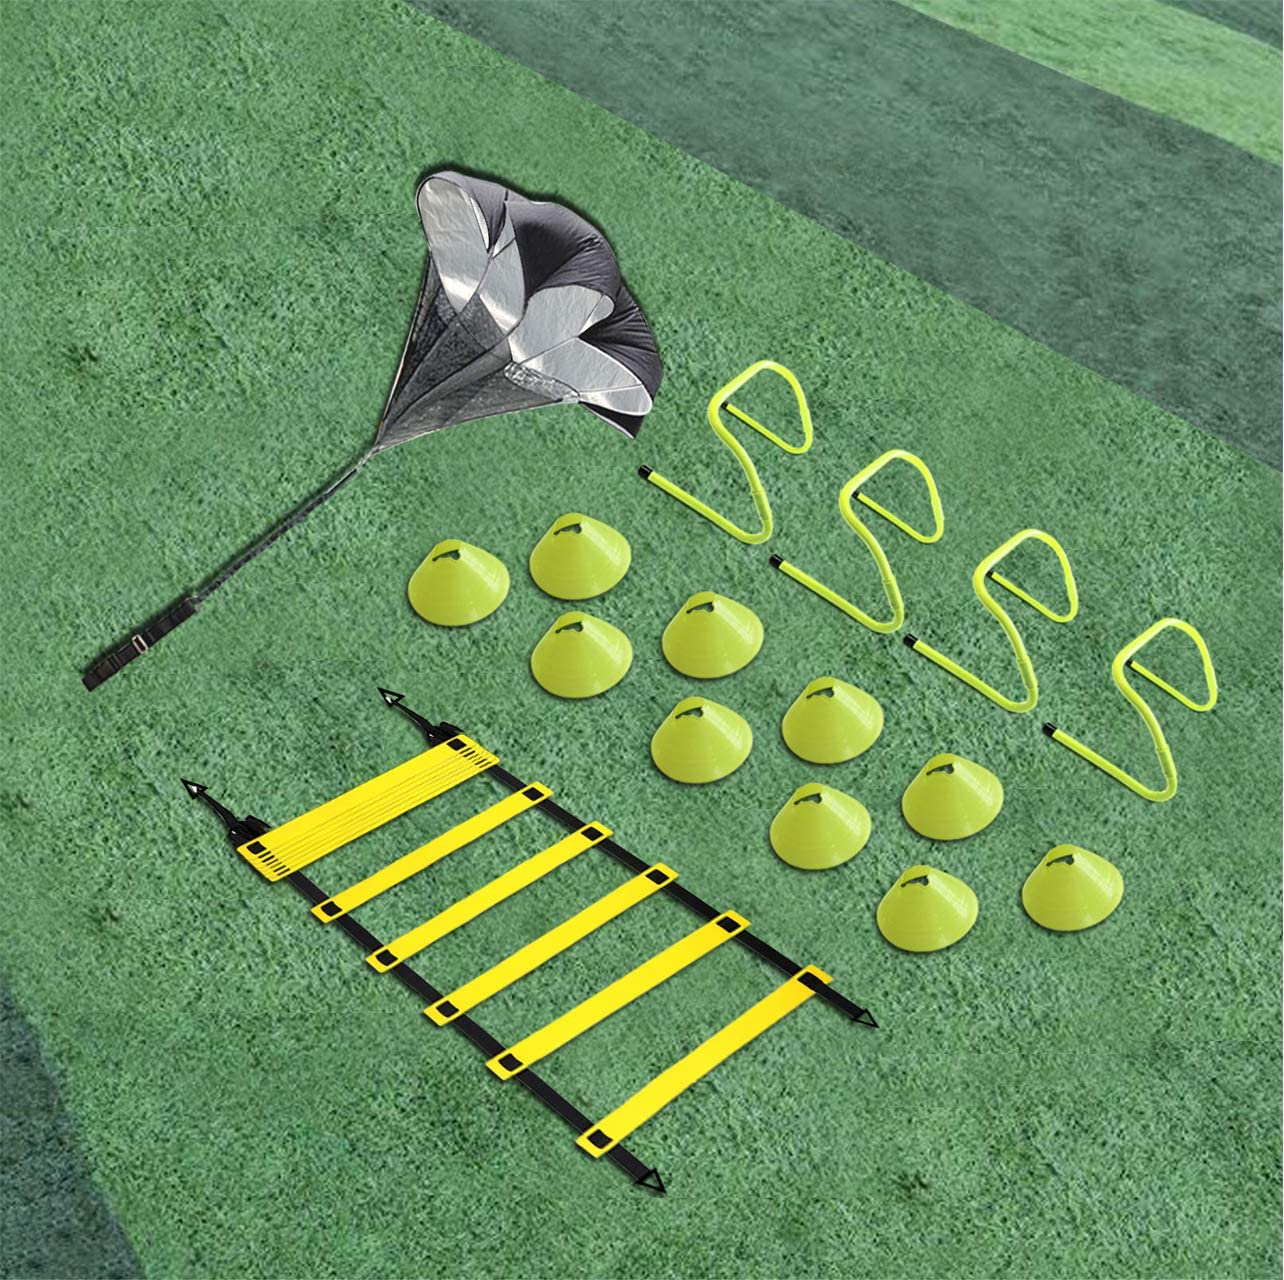 EAZY2HD Speed Agility Training Set- Agility Ladder,12 Cones, 4 Adjustable Hurdles,Parachute Exercise Workout Equipment Boost Fitness Increase Quick Footwork for Soccer,Football,Track Field Train